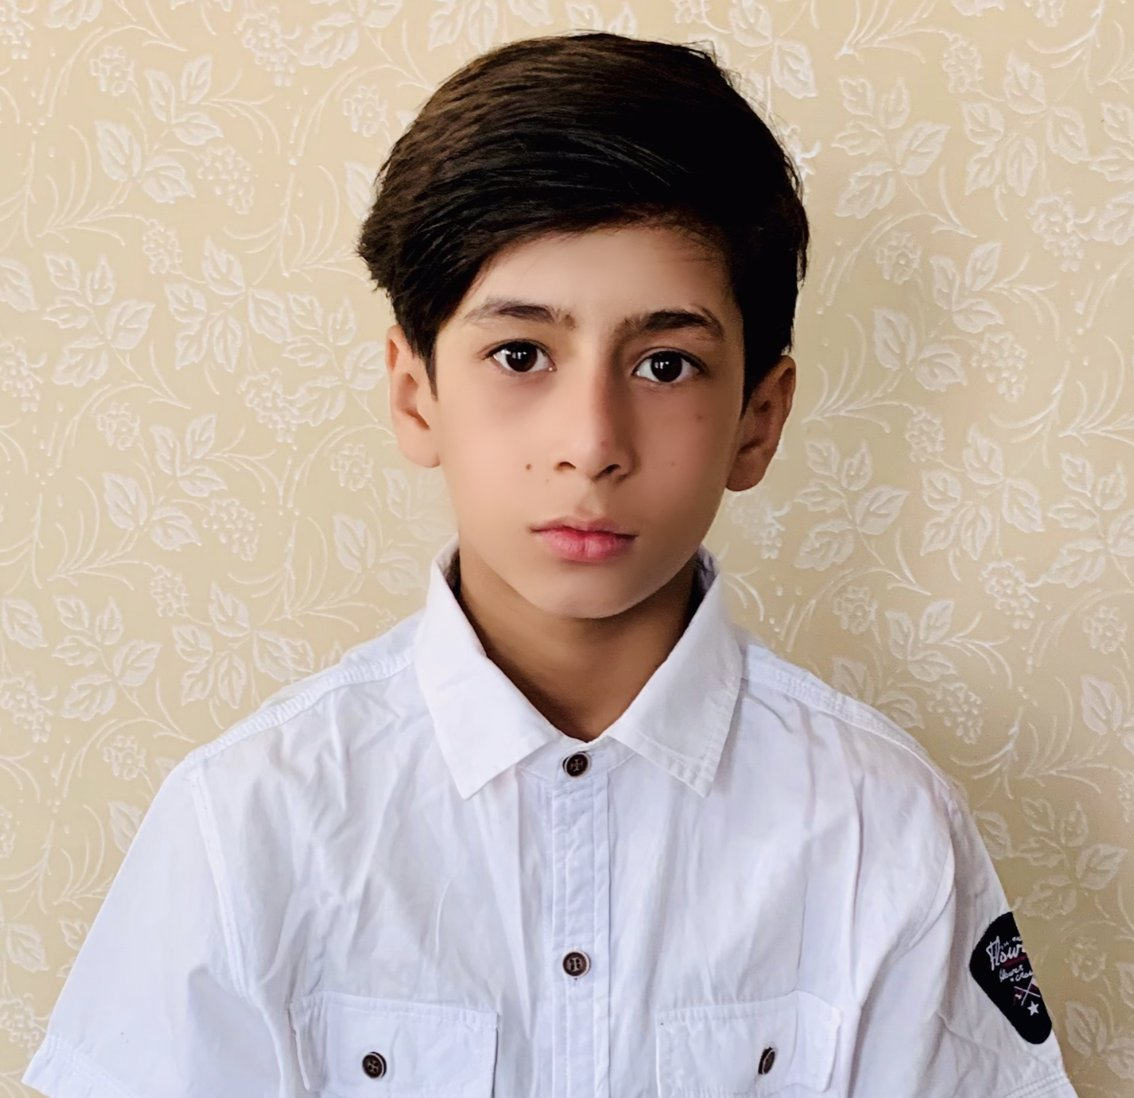 Farzad was 10 years old. The three boys and their father are survived by their mother and sister. 4/10